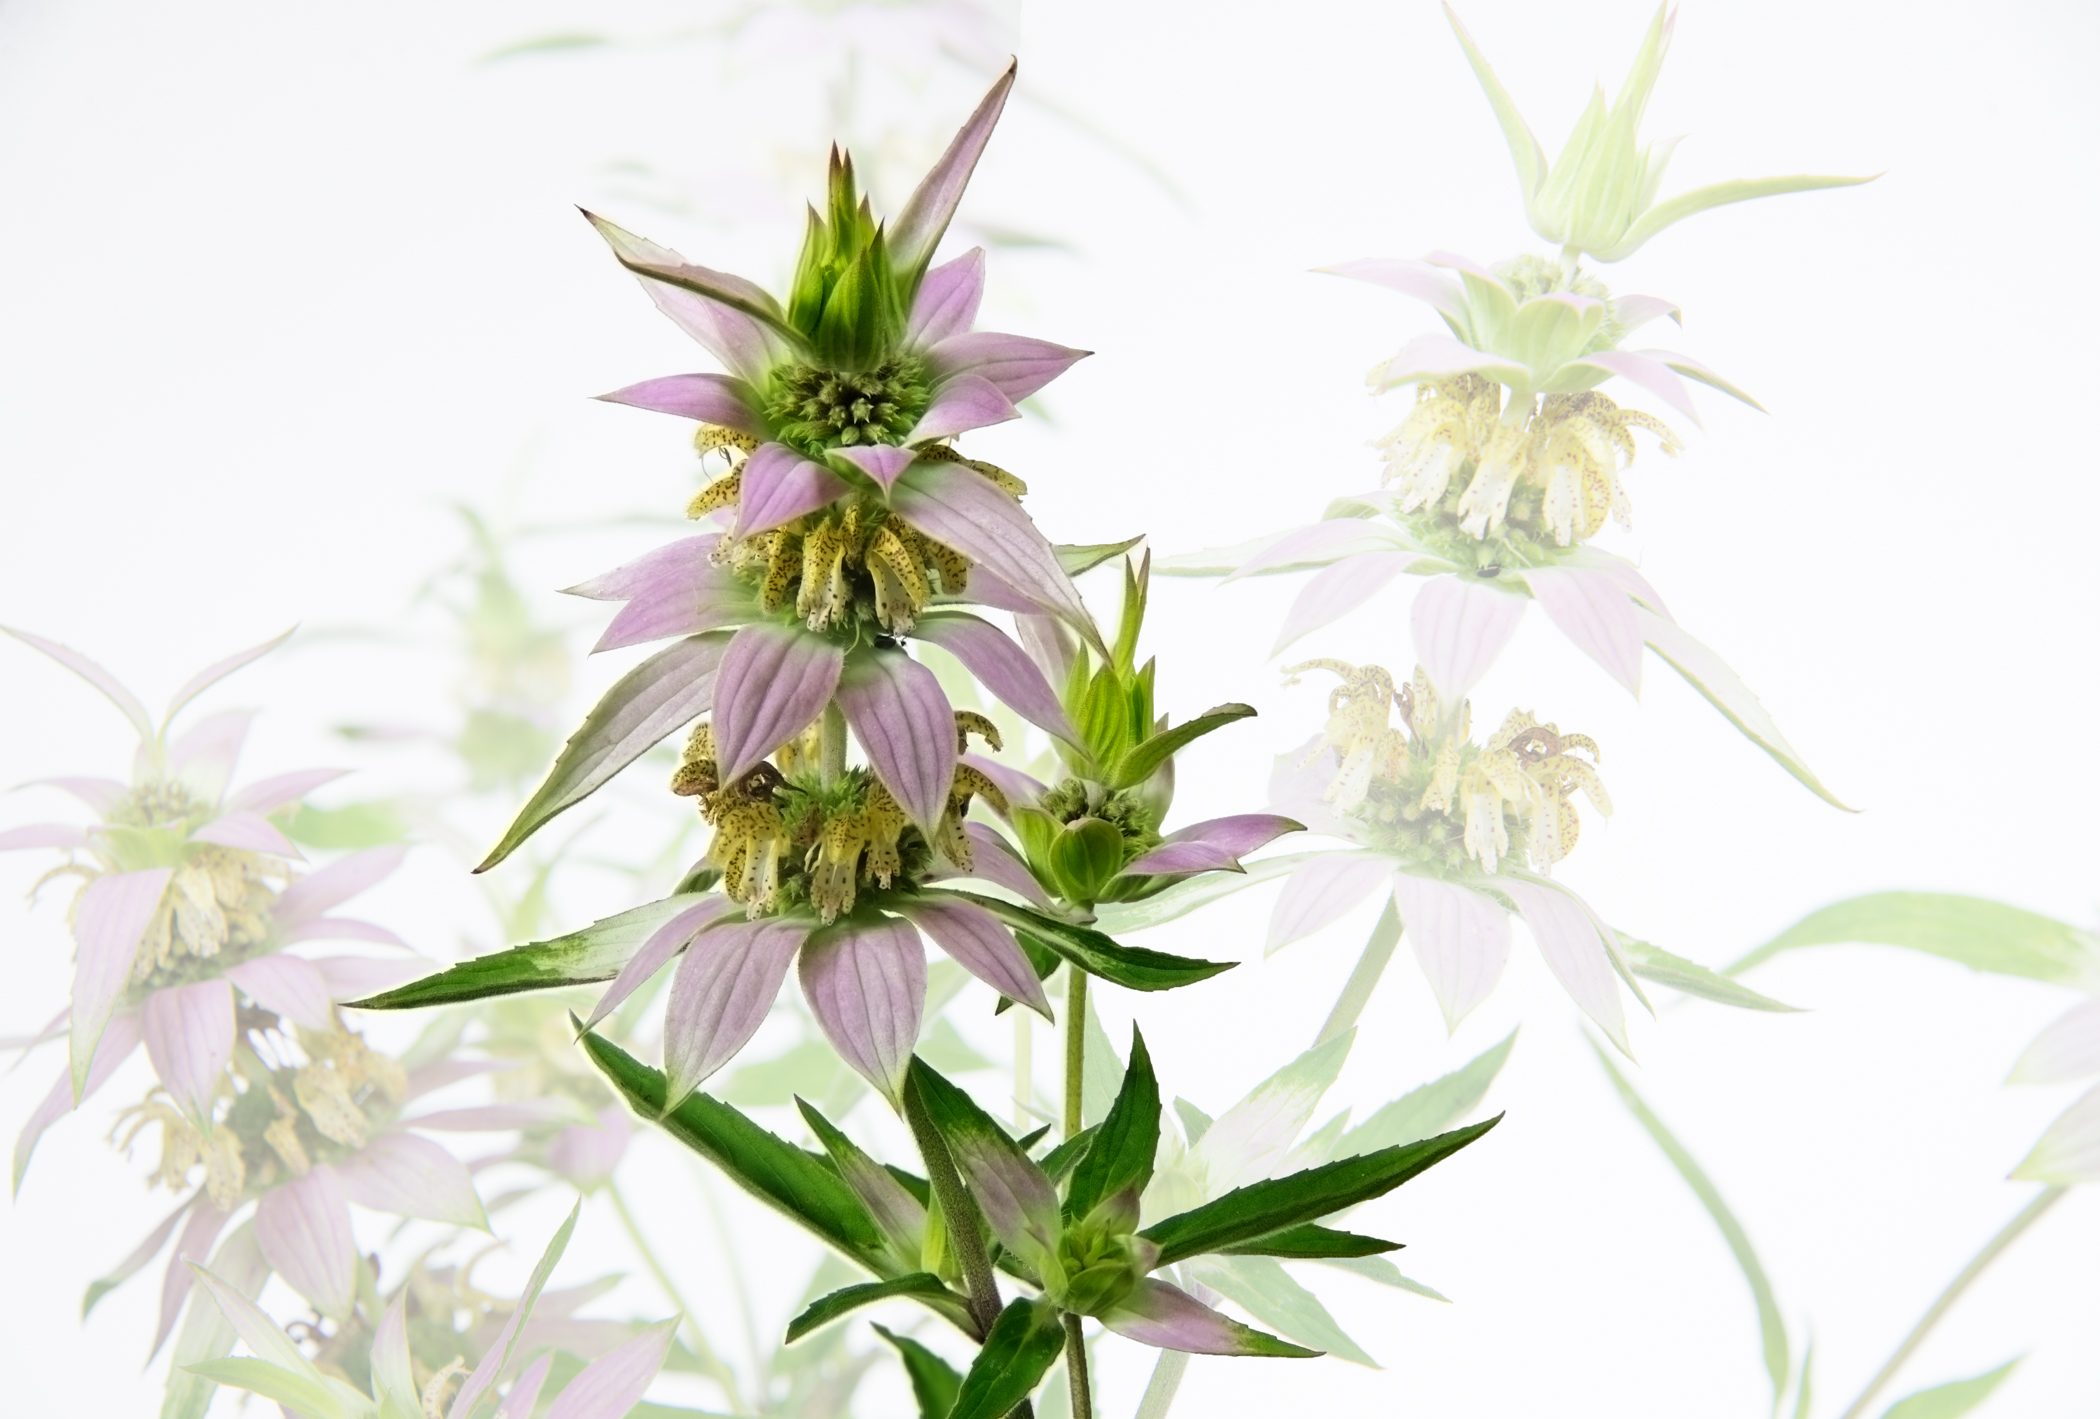 Dotted Horsemint - Monarda Punctata with background